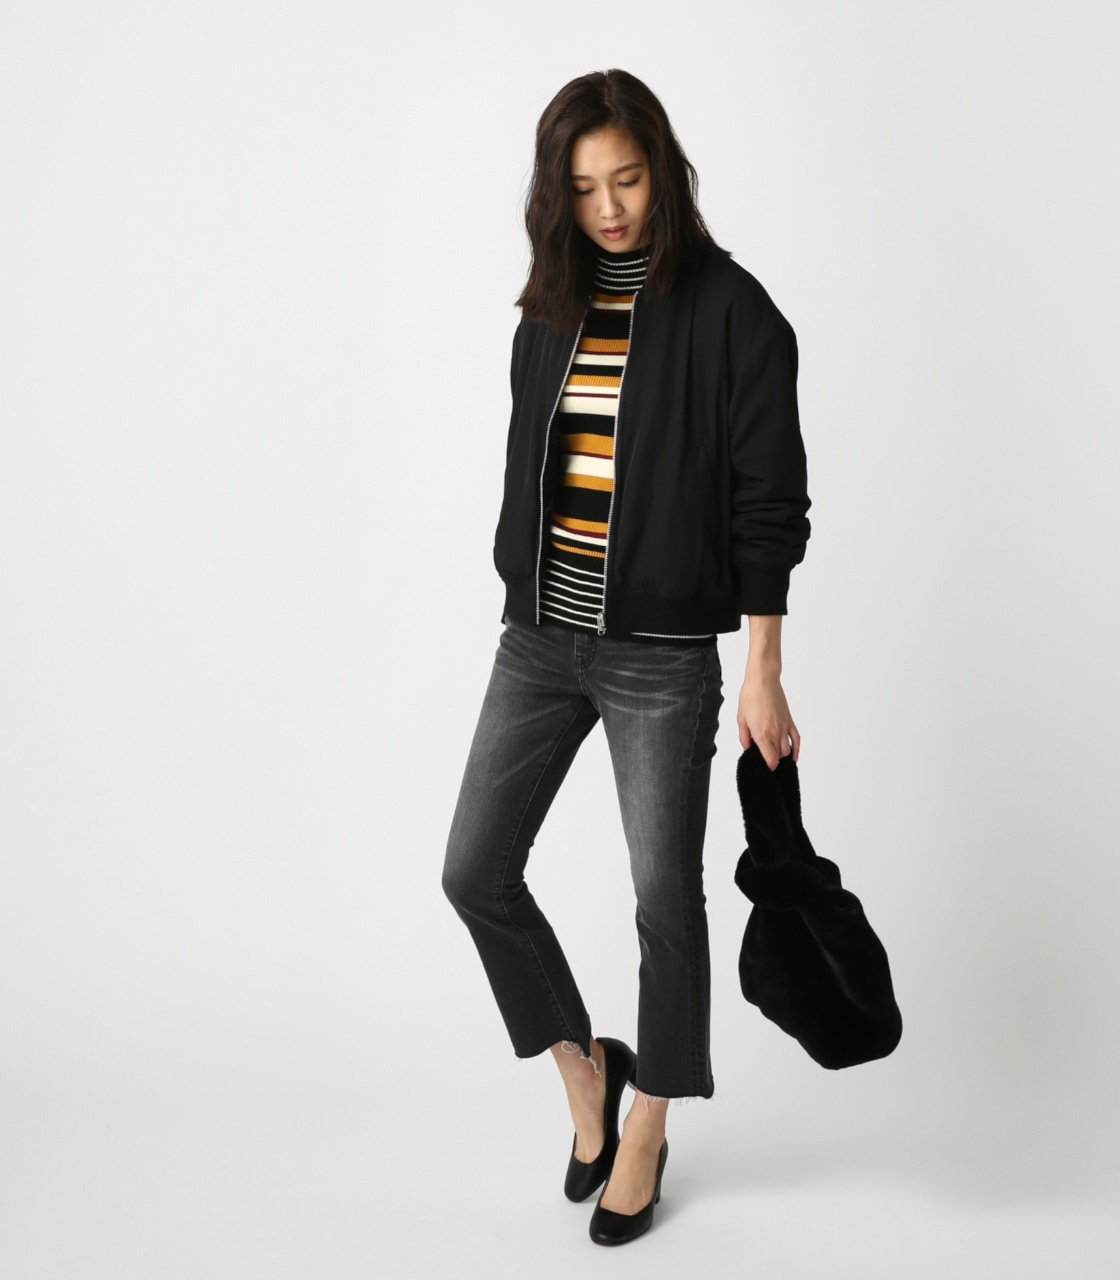 【AZUL BY MOUSSY】リバーシブルボアブルゾン 詳細画像 BLK 3